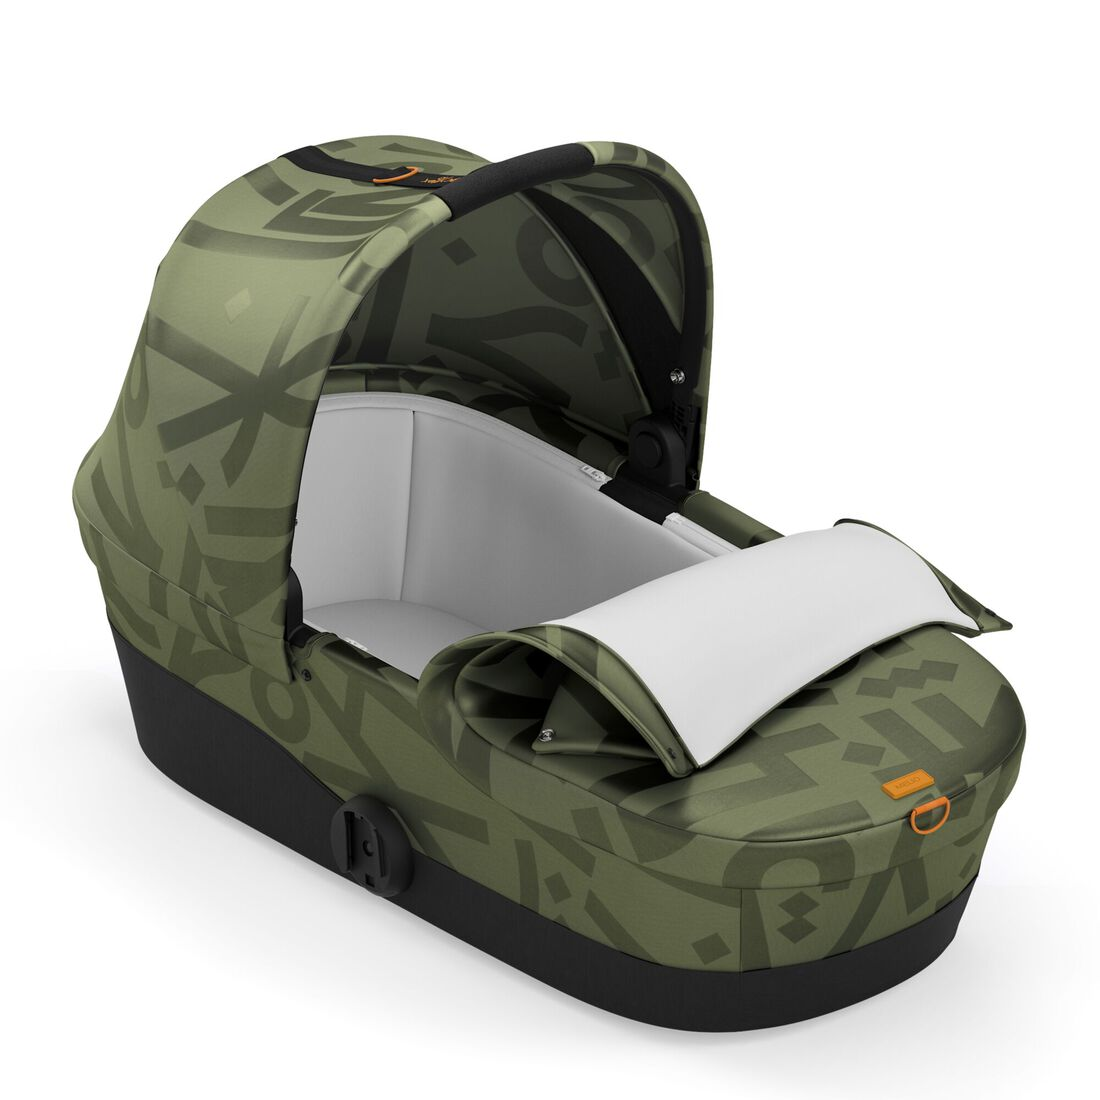 CYBEX Melio Cot - Olive Green in Olive Green large image number 3